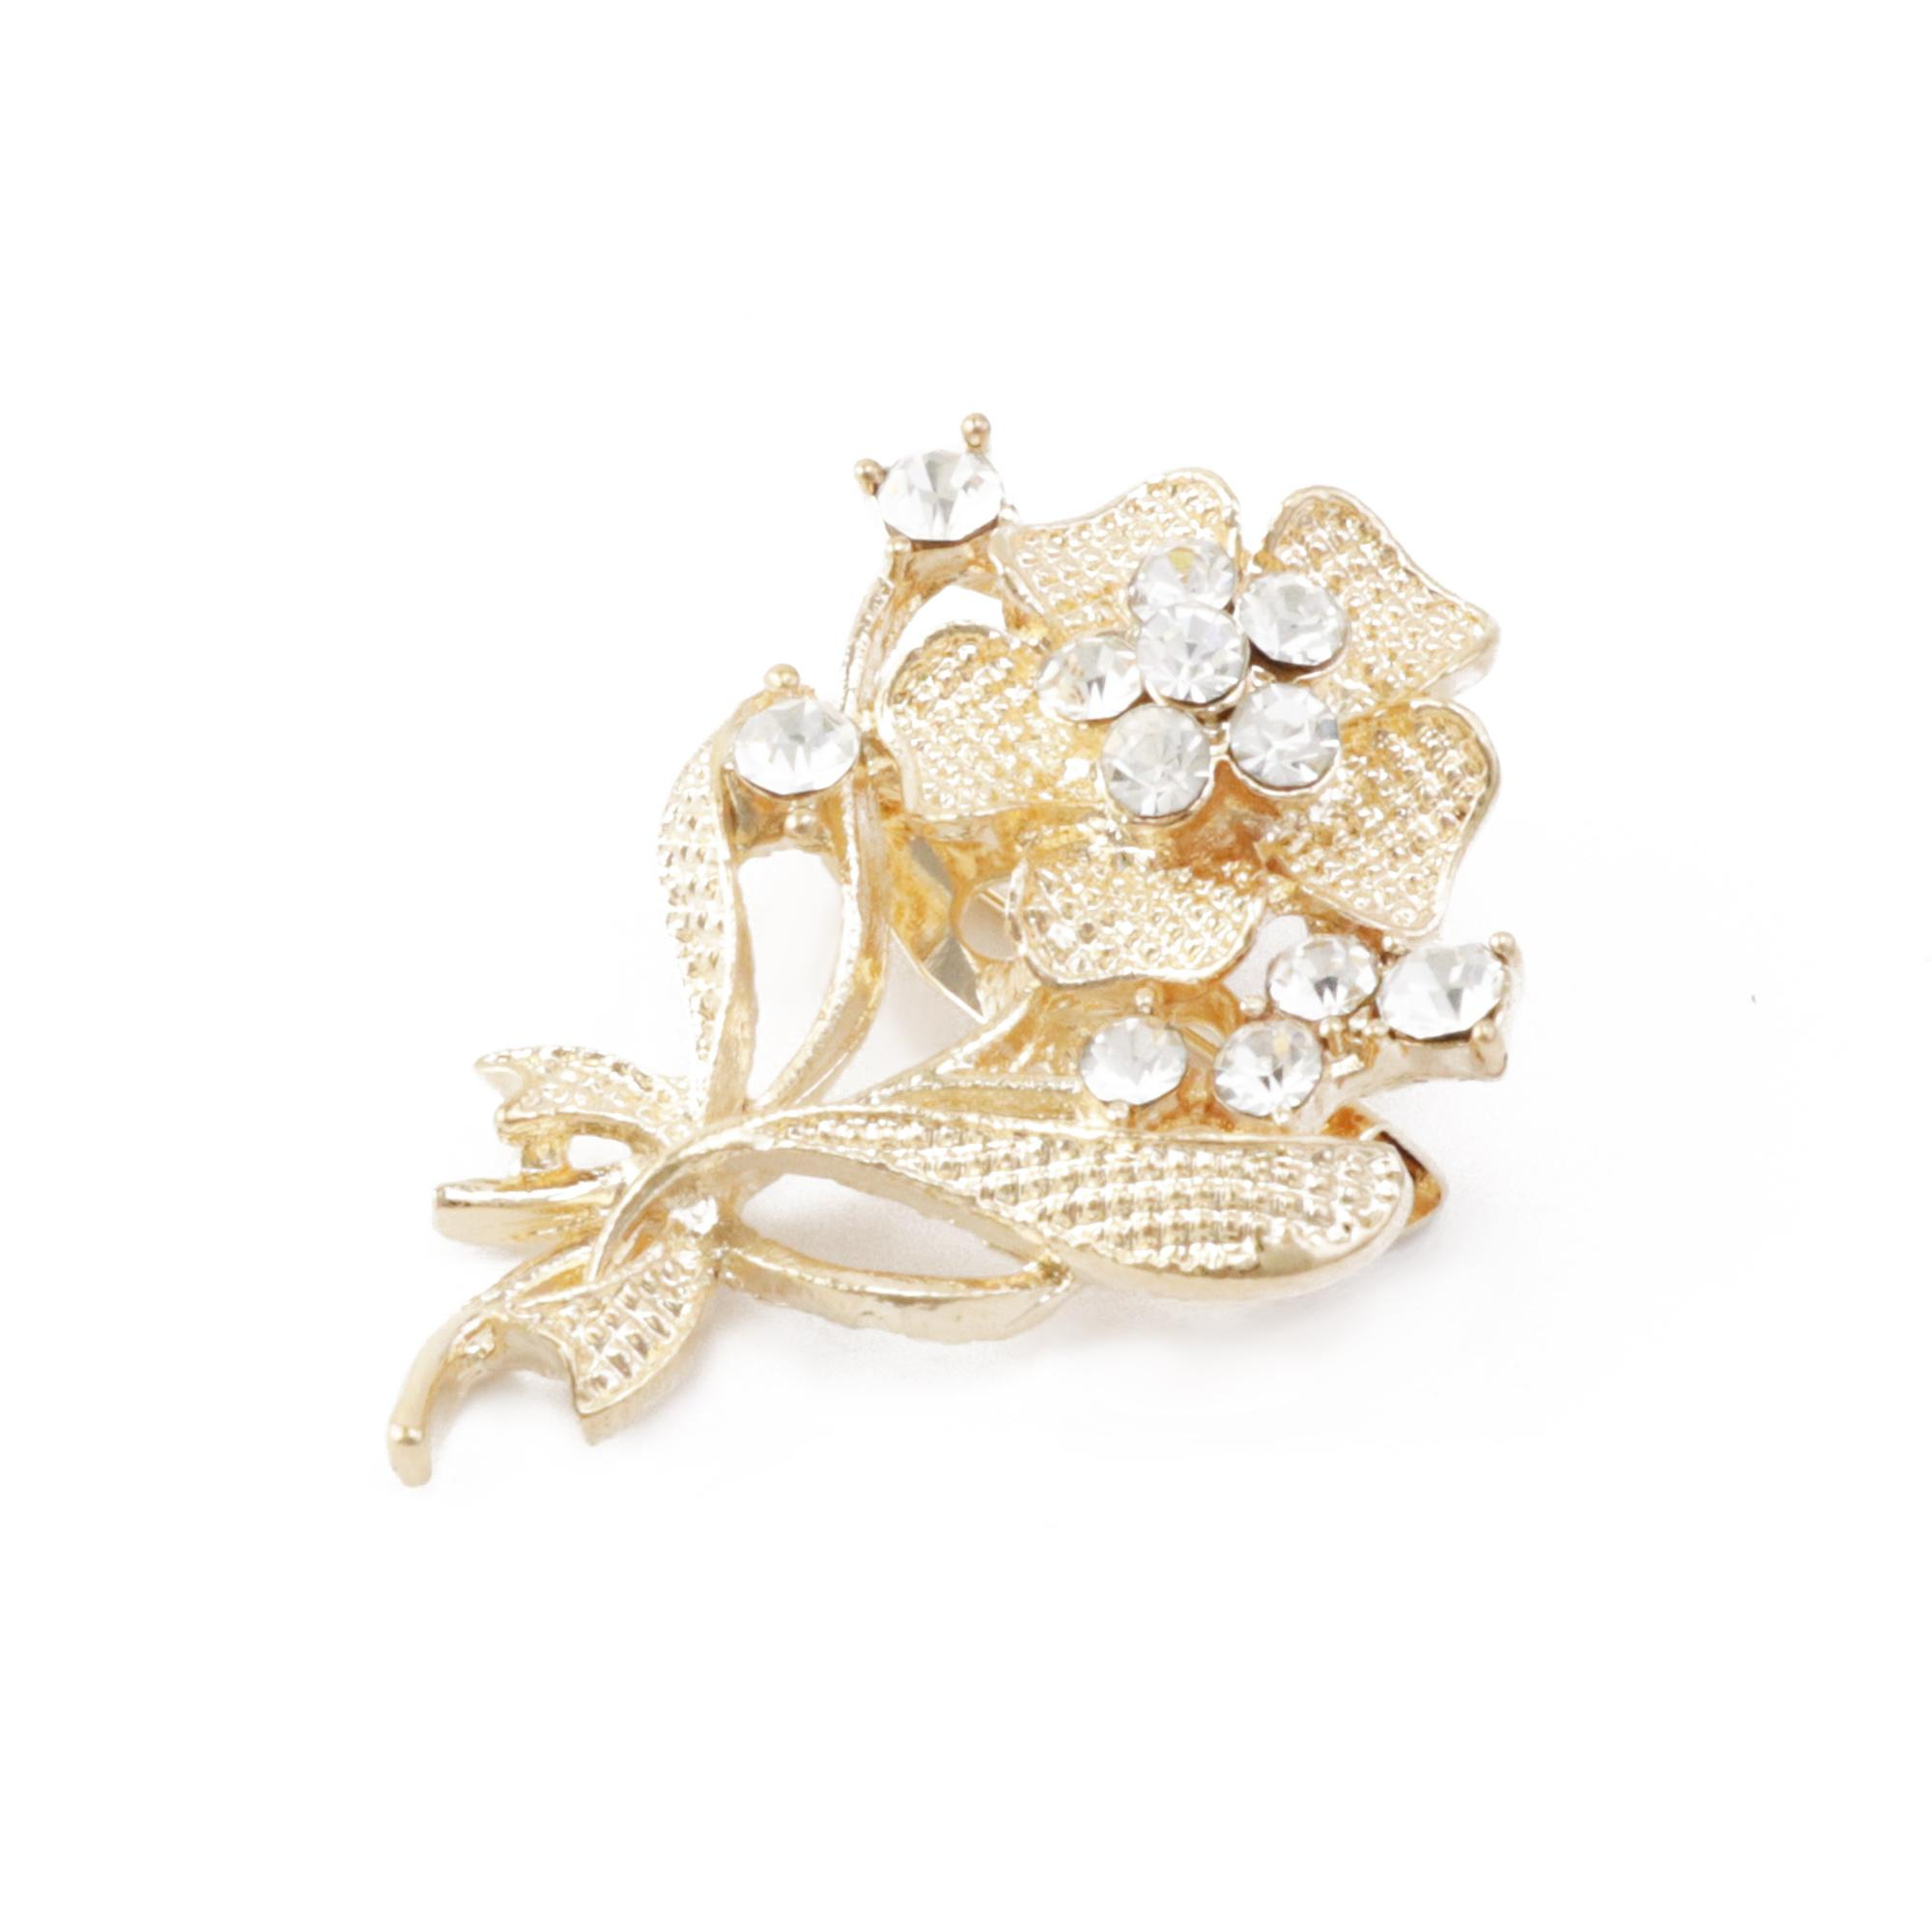 Twinkle Fashion-Elegant Gold Rhinestone Brooch-C00462